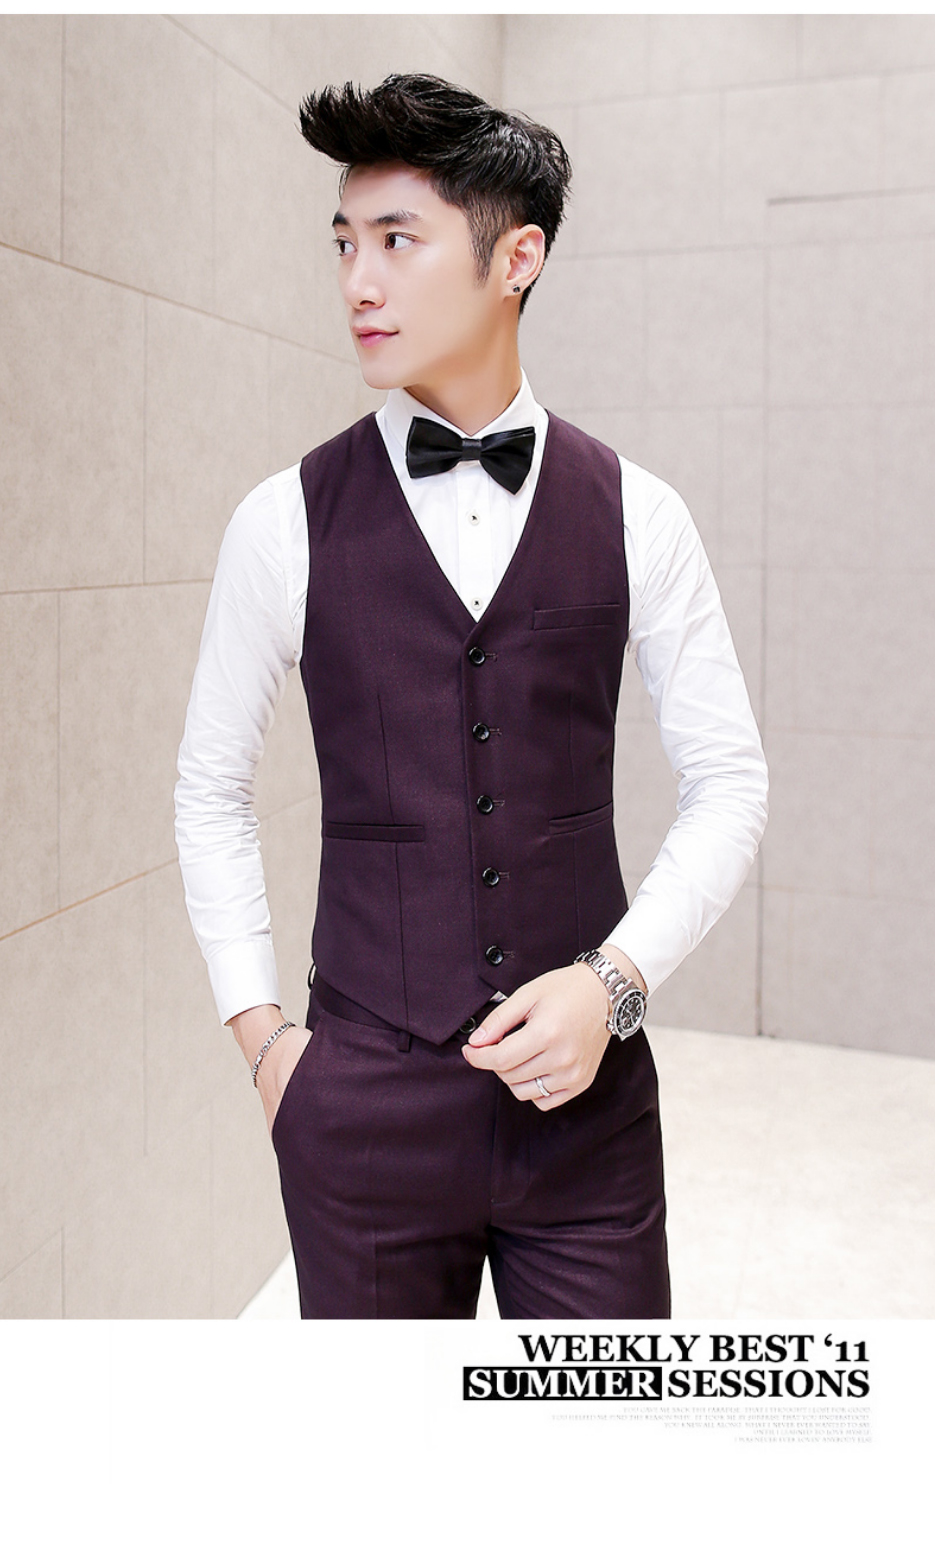 54776bd62 Men Suit Vest Wedding Slim FIt Burgundy Sleeveless Jacket Waistcoat ...